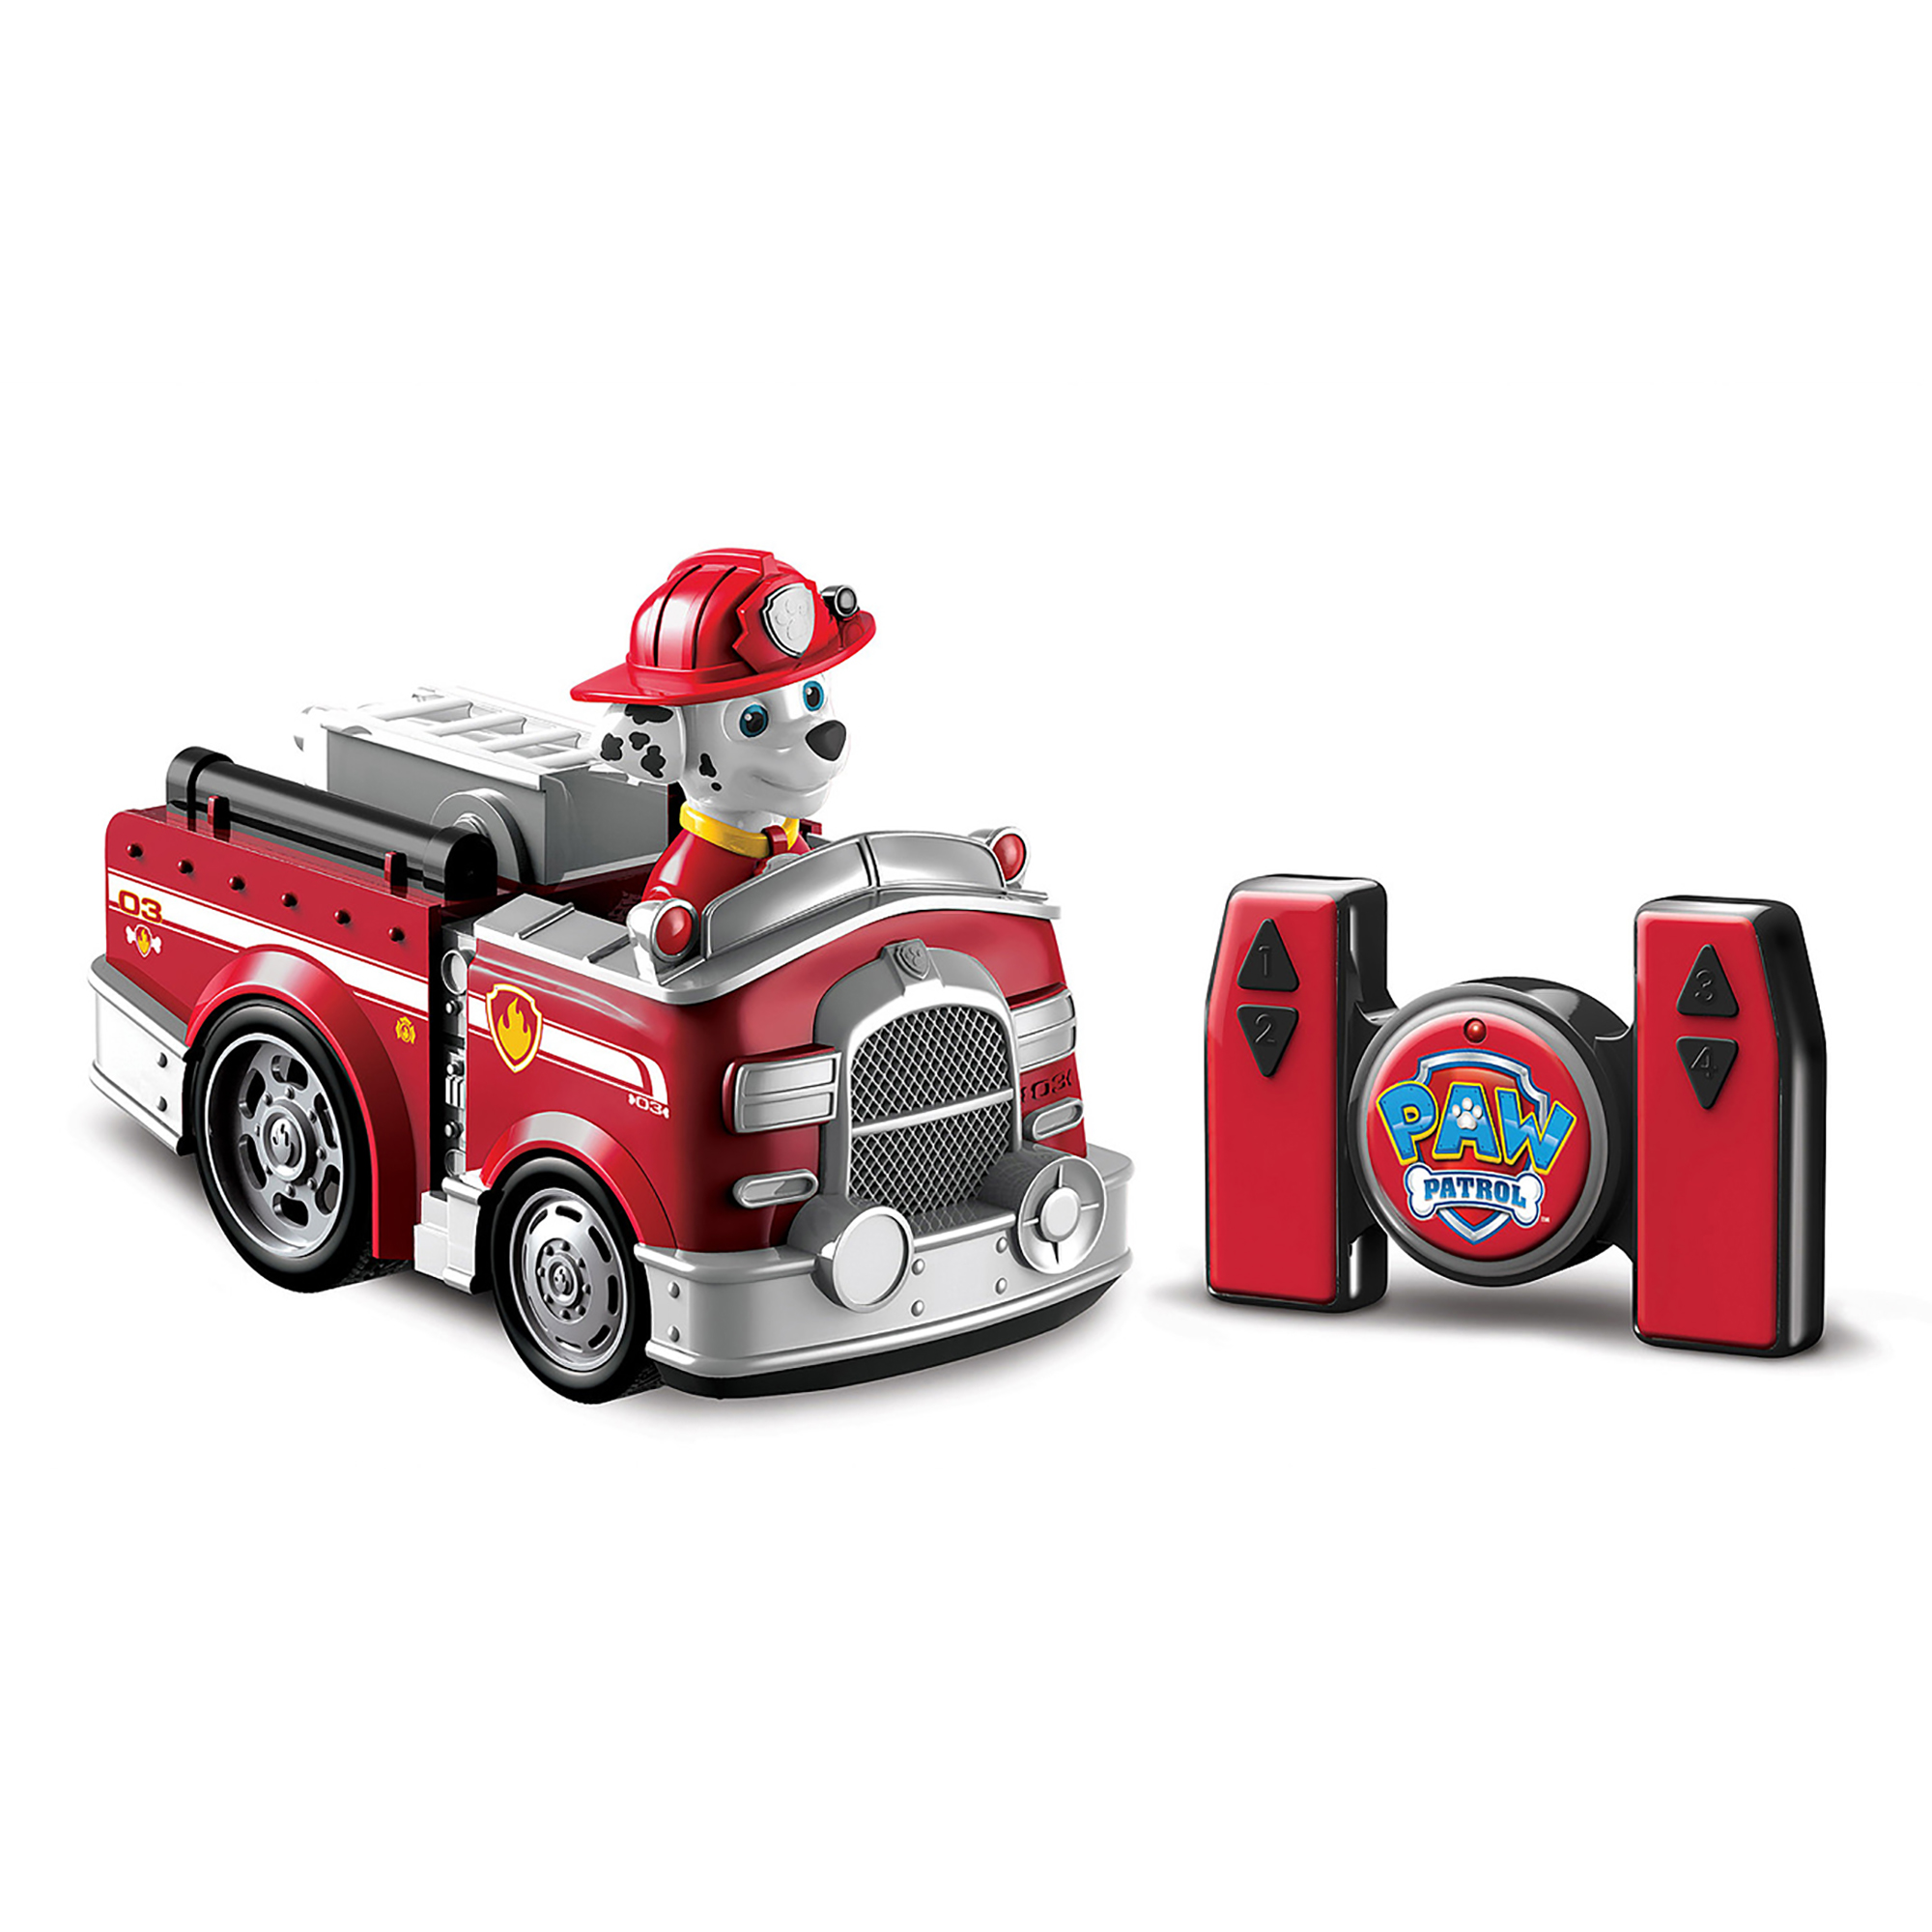 Jamn Products - Paw Patrol My First Preschool Remote Control, Marshall